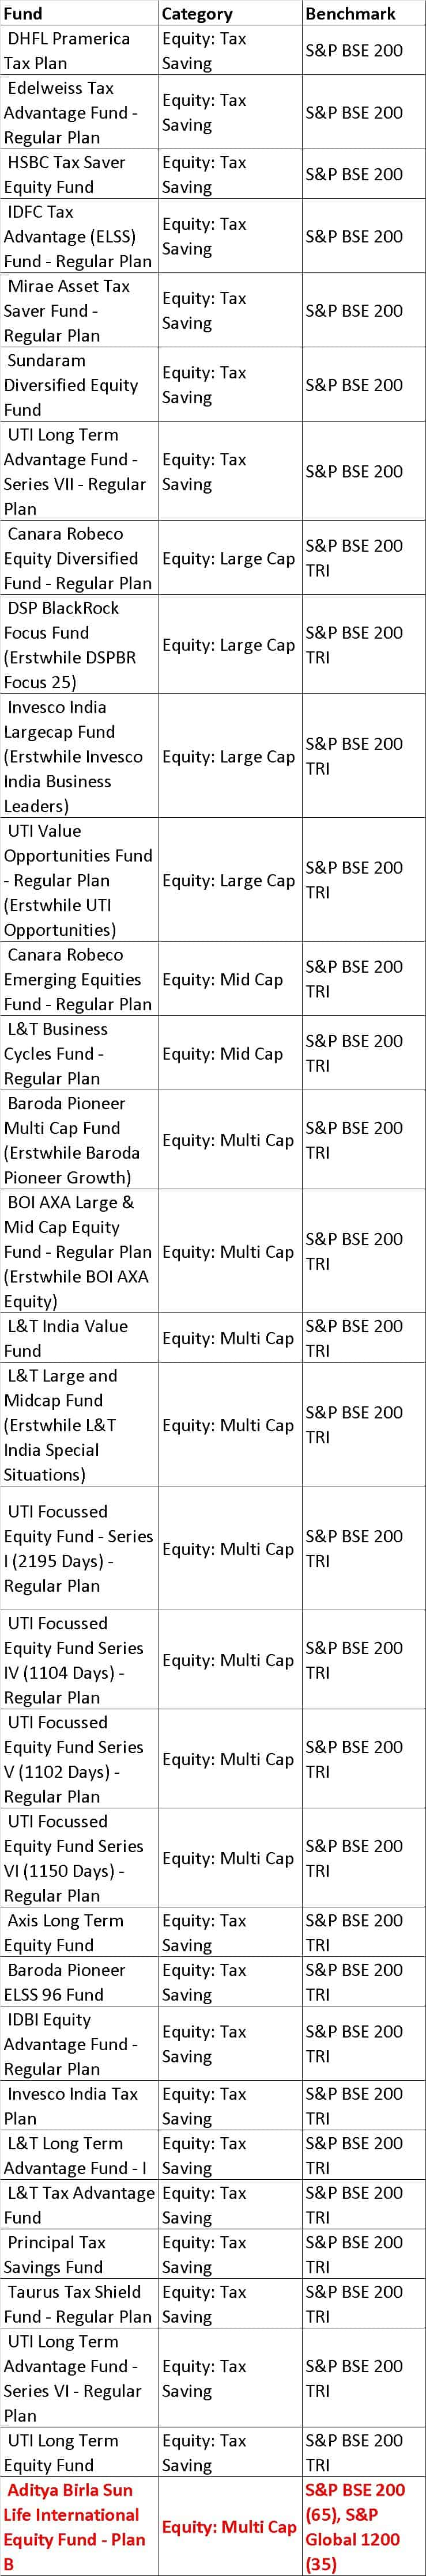 BSE 200 2 - List of mutual fund benchmarks (2018) with funds sorted by benchmark